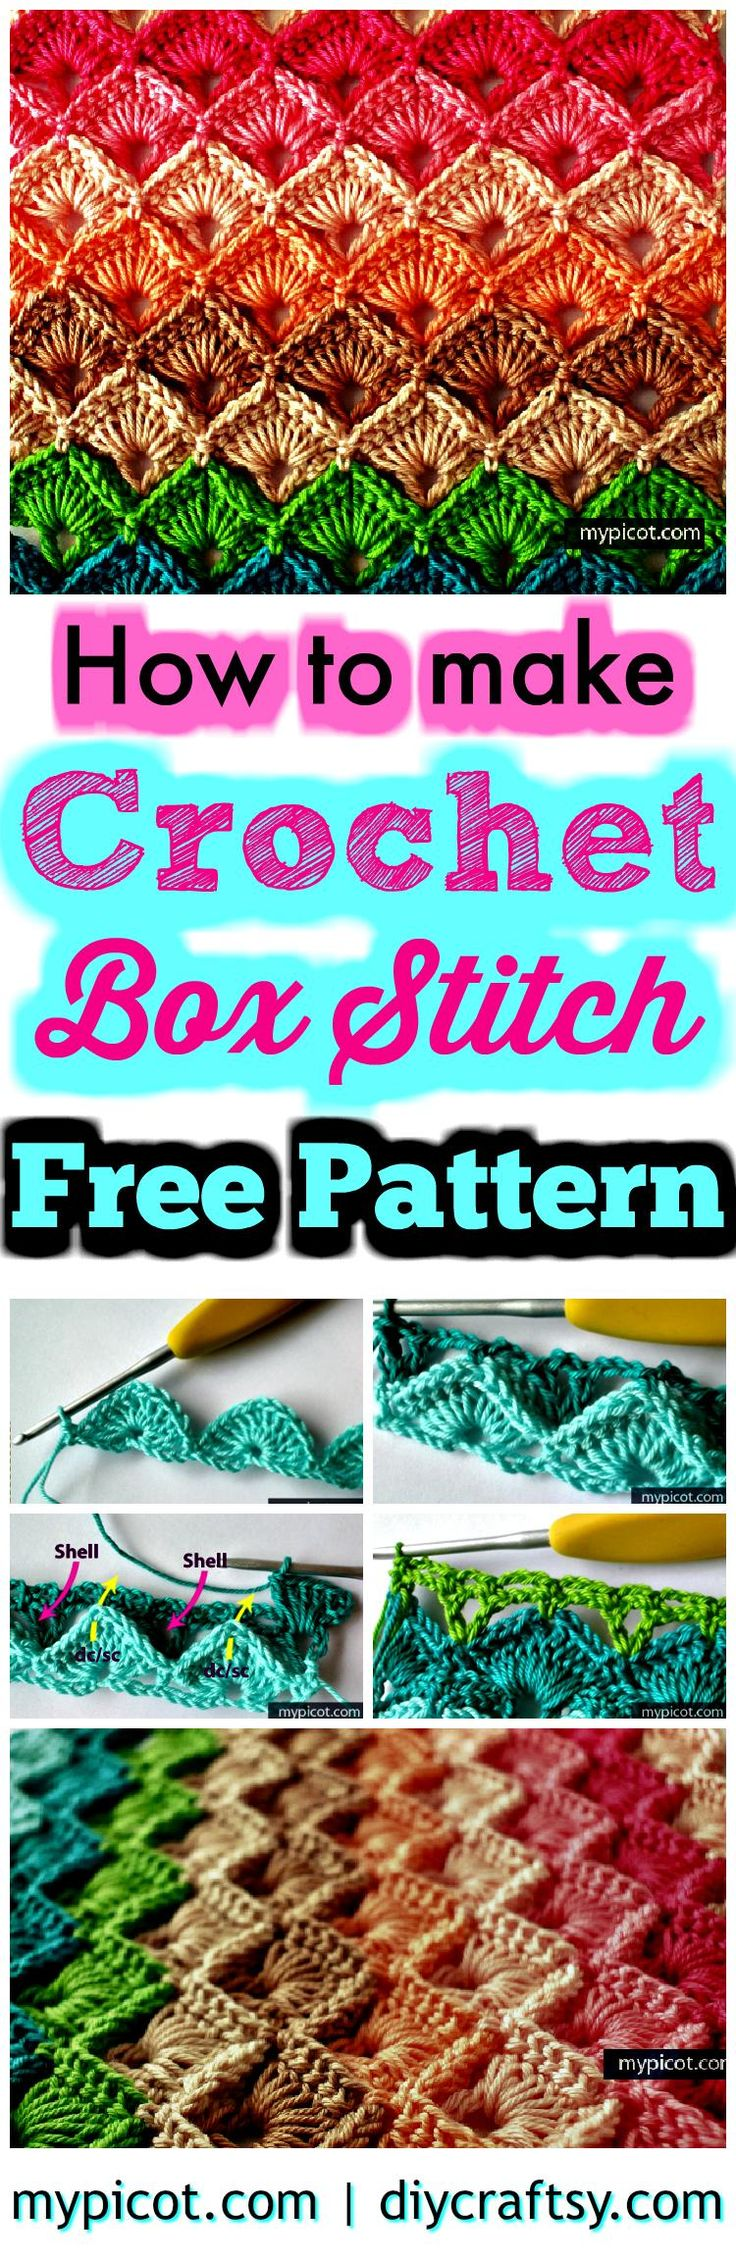 Crochet Box Stitch – Step by Step Instructions – Free Crochet Pattern